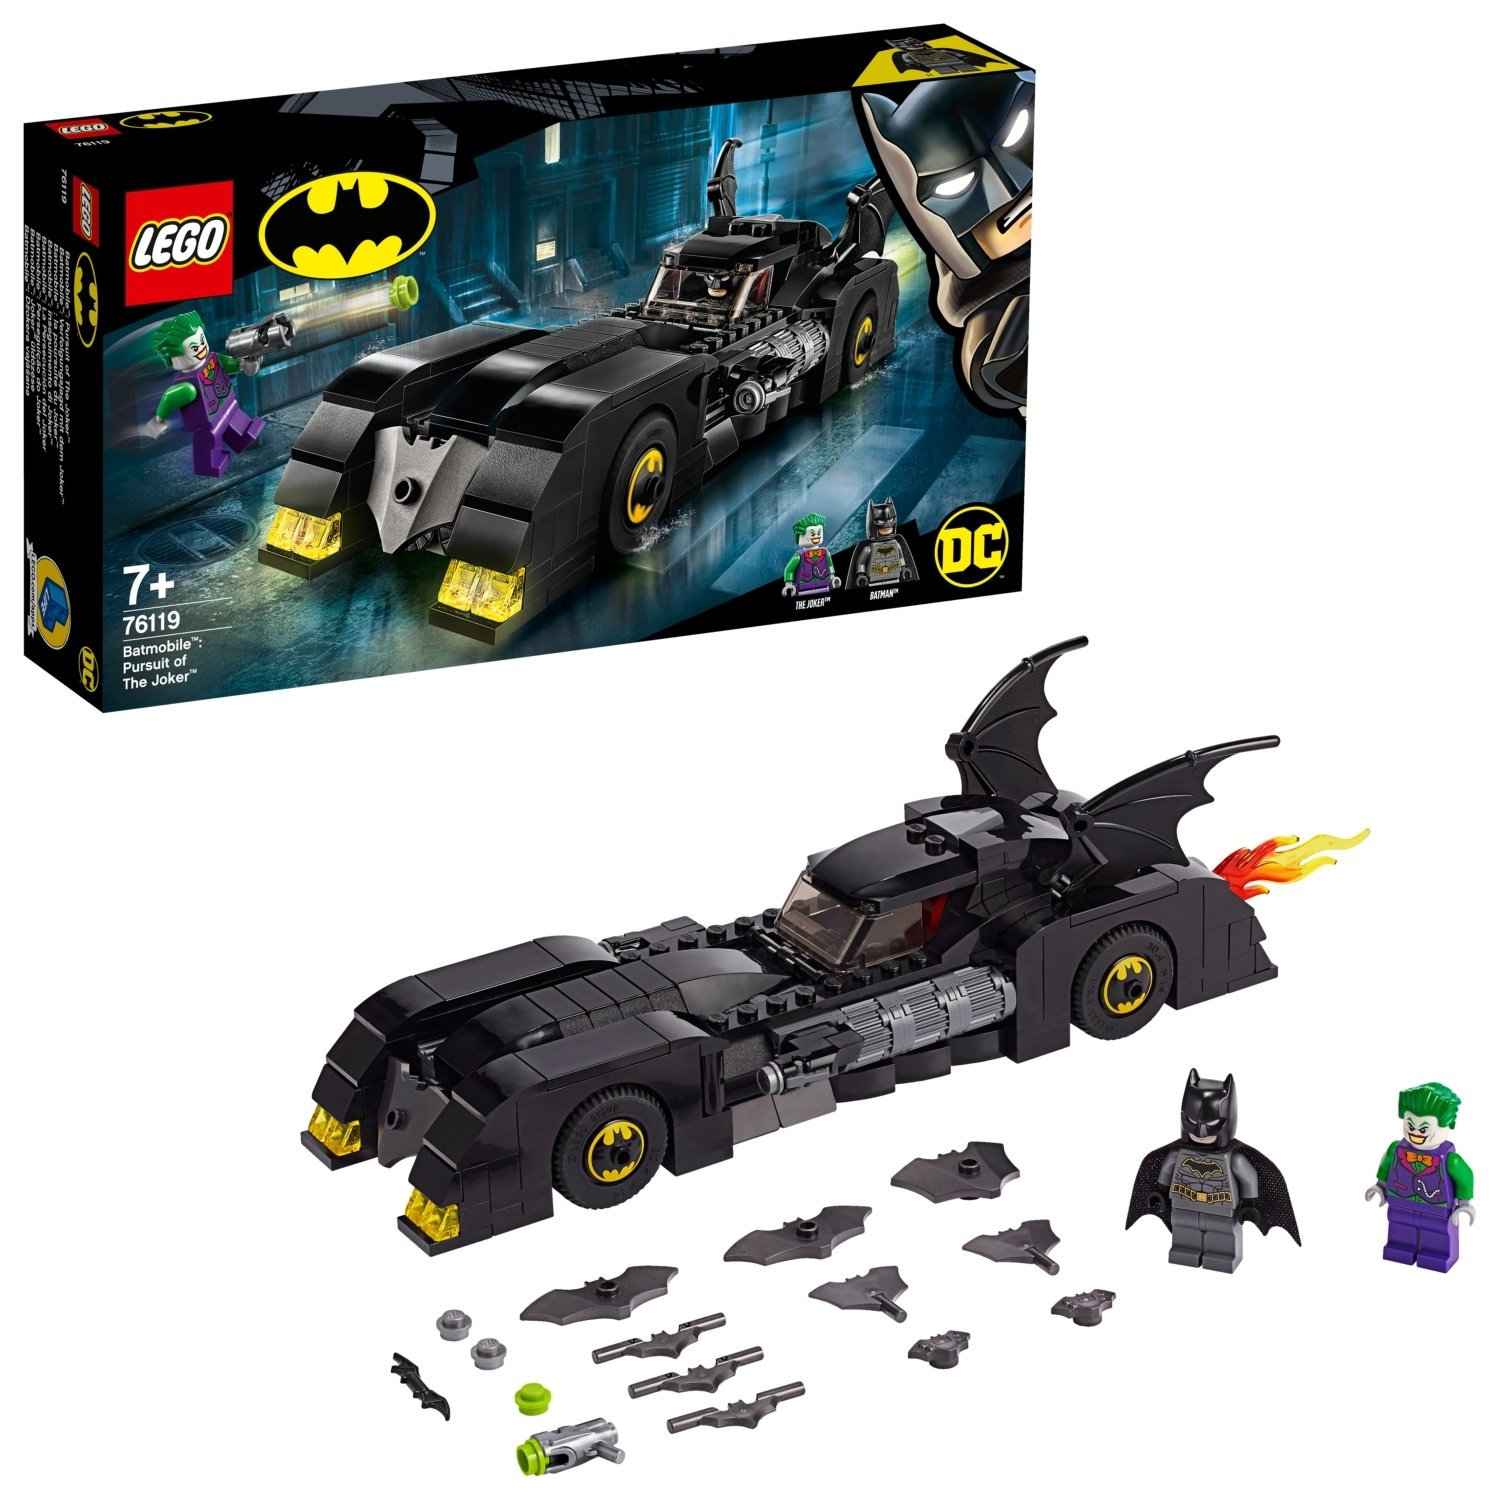 LEGO Super Heroes Classic Batmobile - 76119